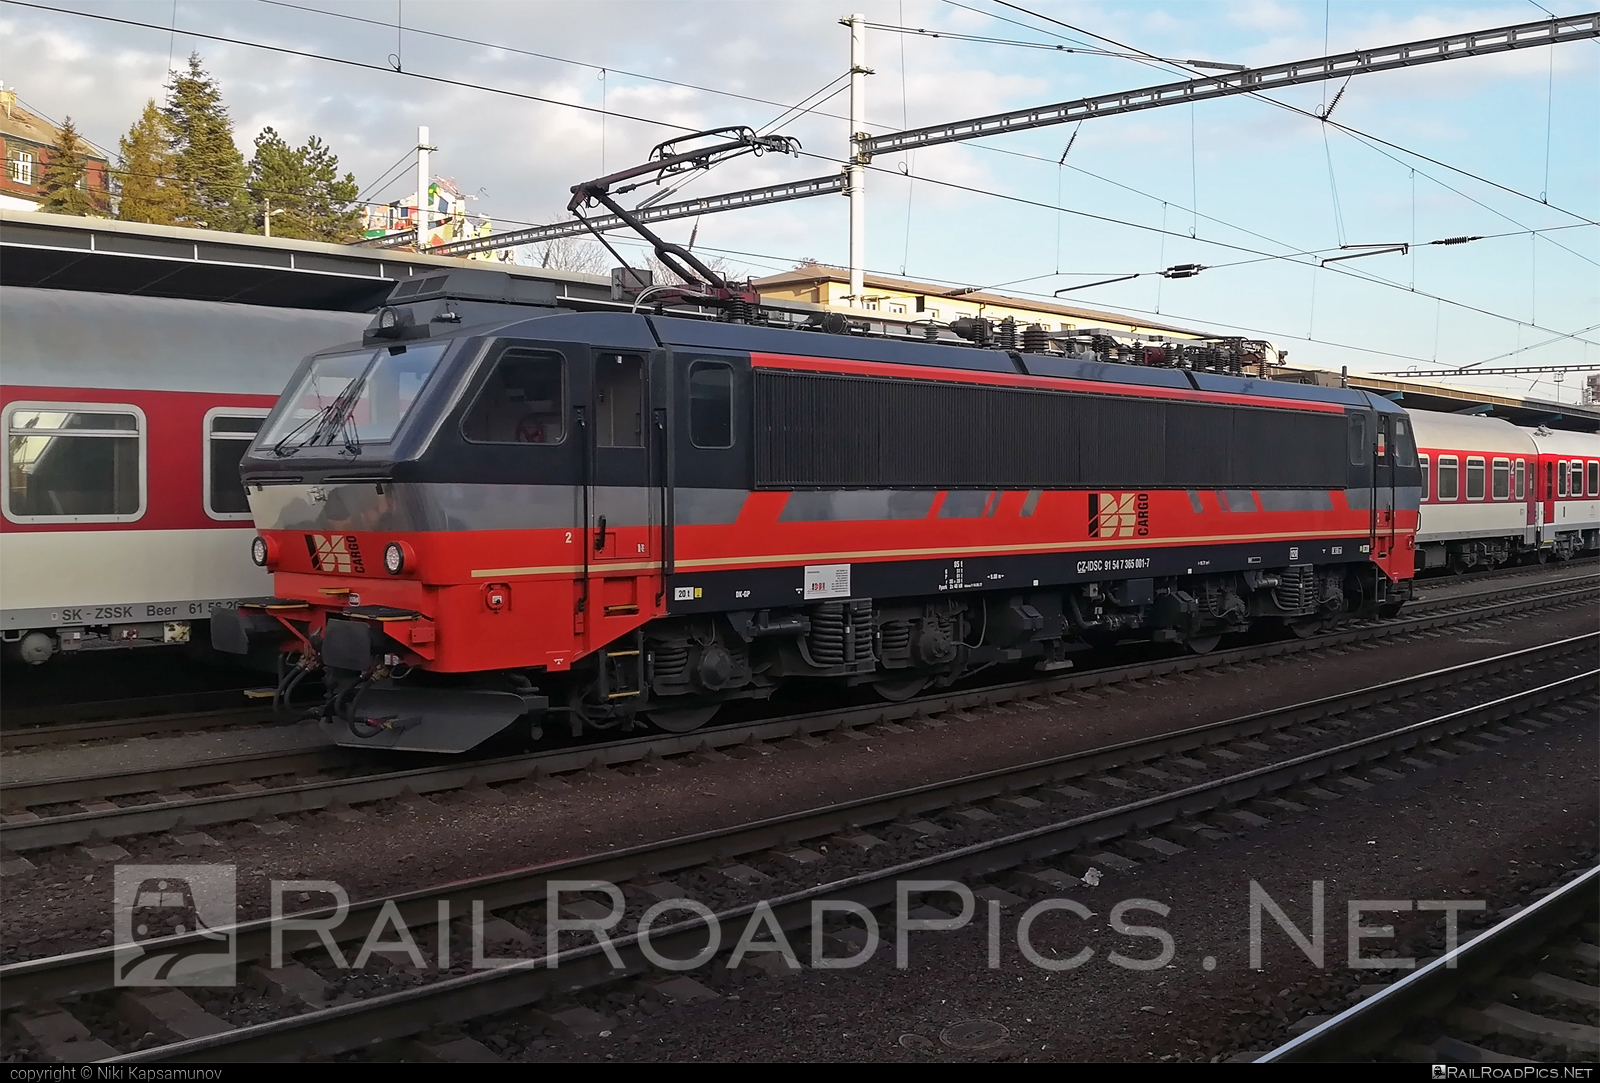 CZ LOKO EffiLiner 3000 - 365 001-7 operated by IDS CARGO a. s. #belgicanka #czloko #effiliner #effiliner3000 #idsc #idscargo #sncb12 #sncbclass12